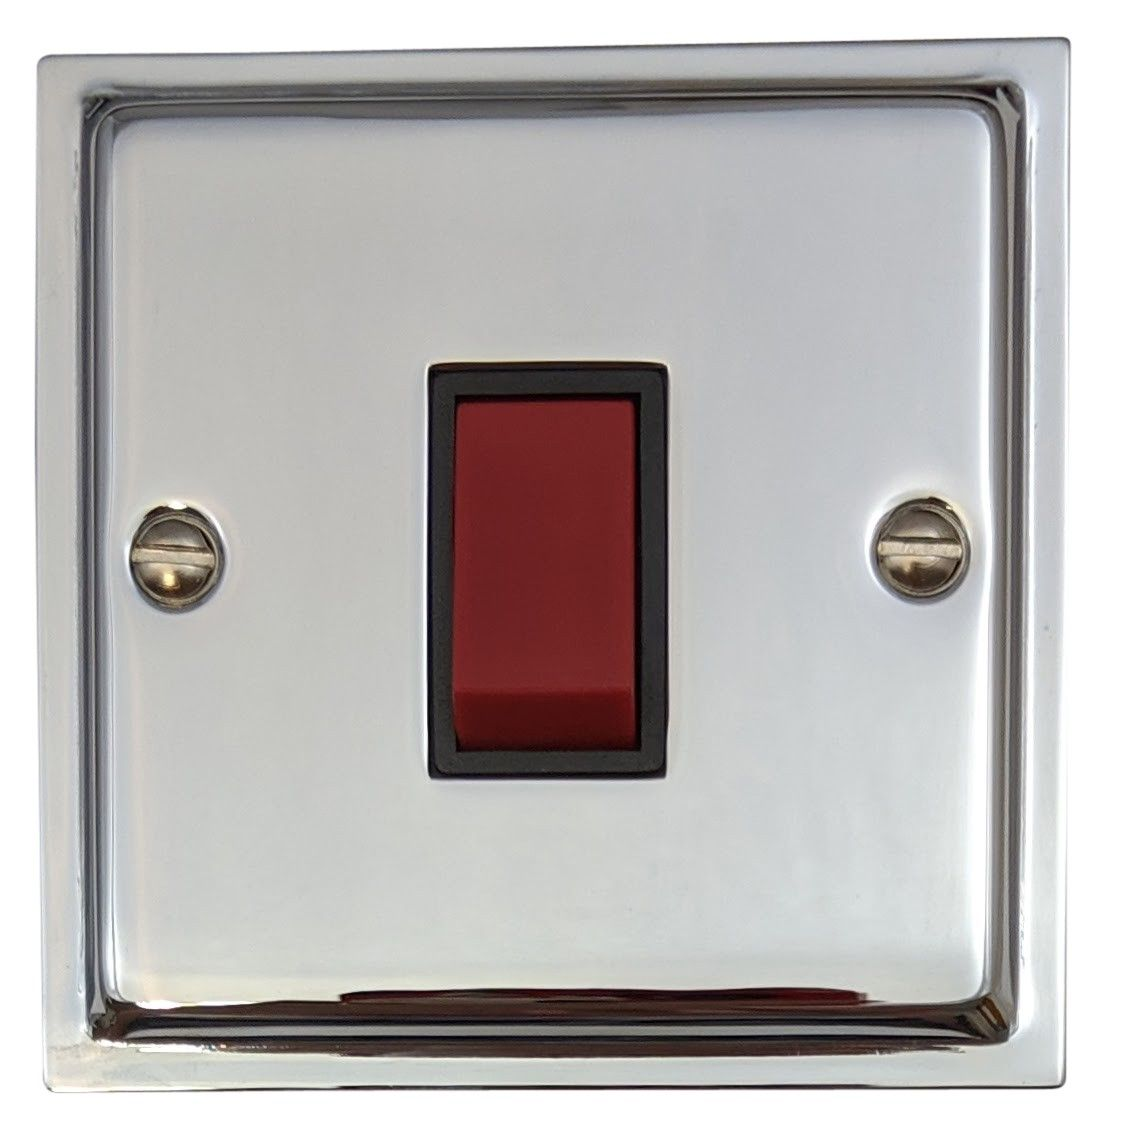 G&H HC47B Highline Plate Polished Chrome 45 Amp DP Cooker Switch Single Plate